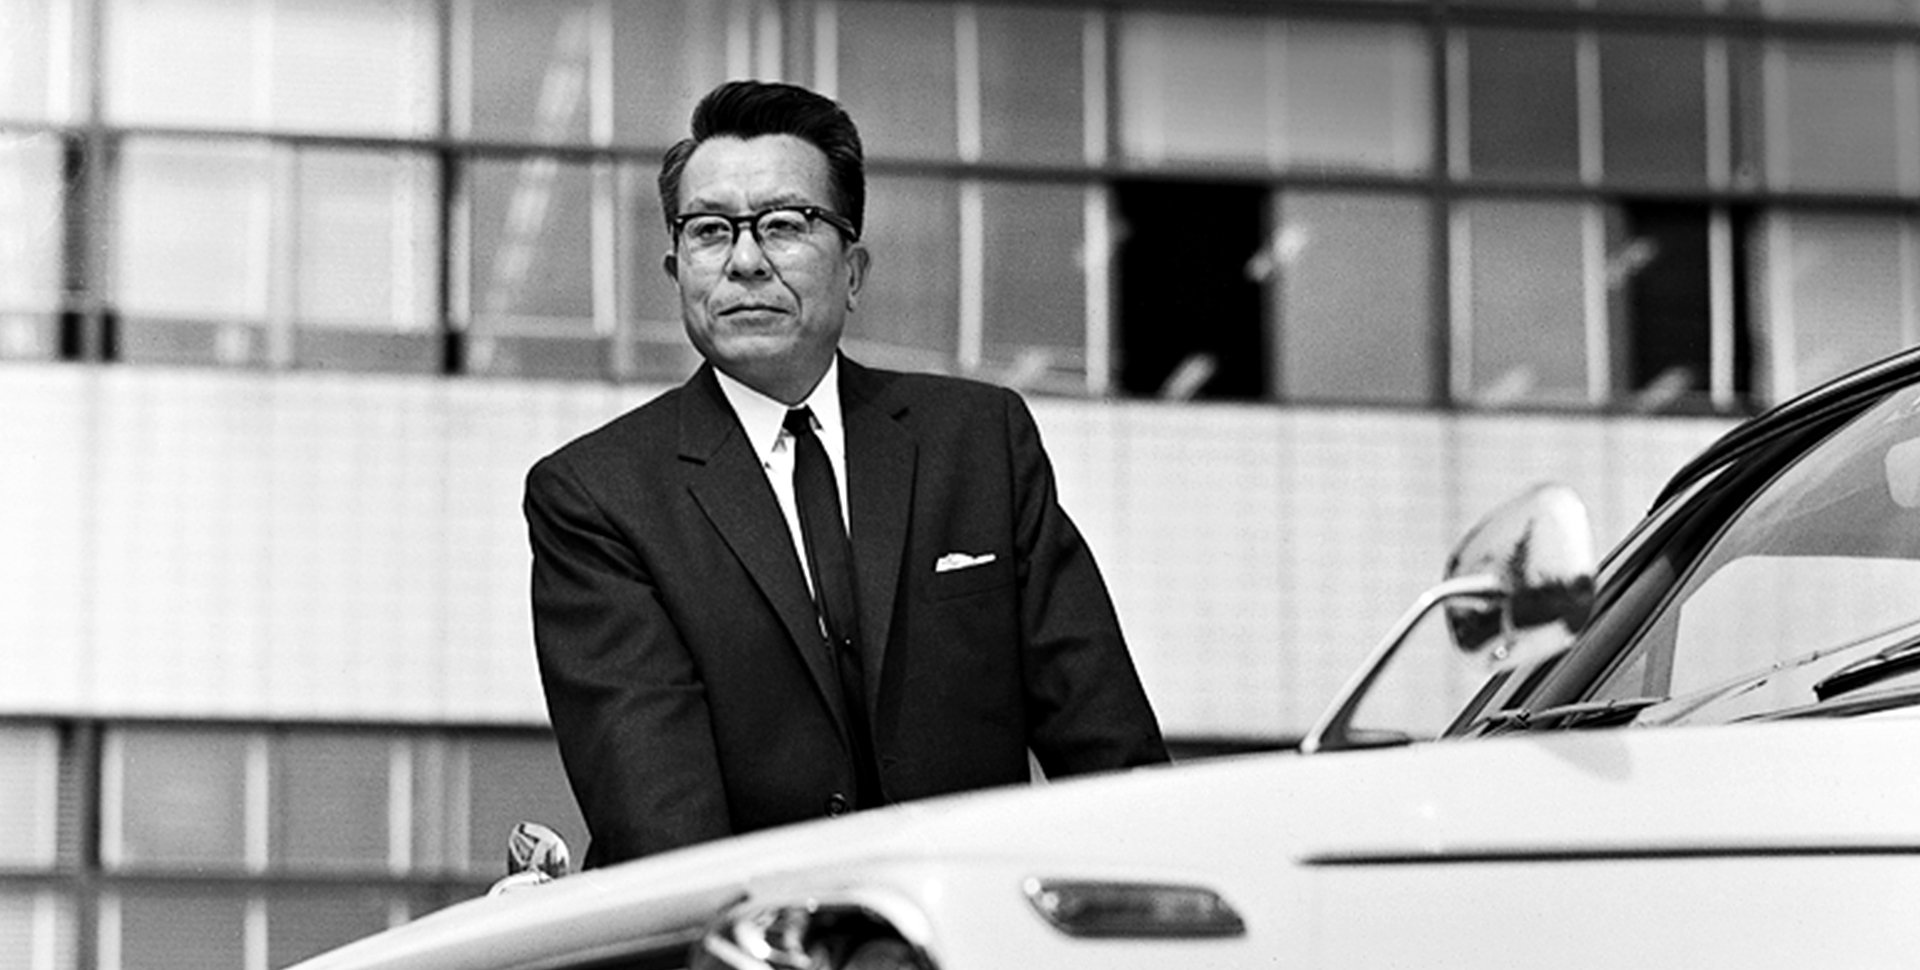 Tatsuo Hasegawa, Chief Engineer for the 1st generation Corolla